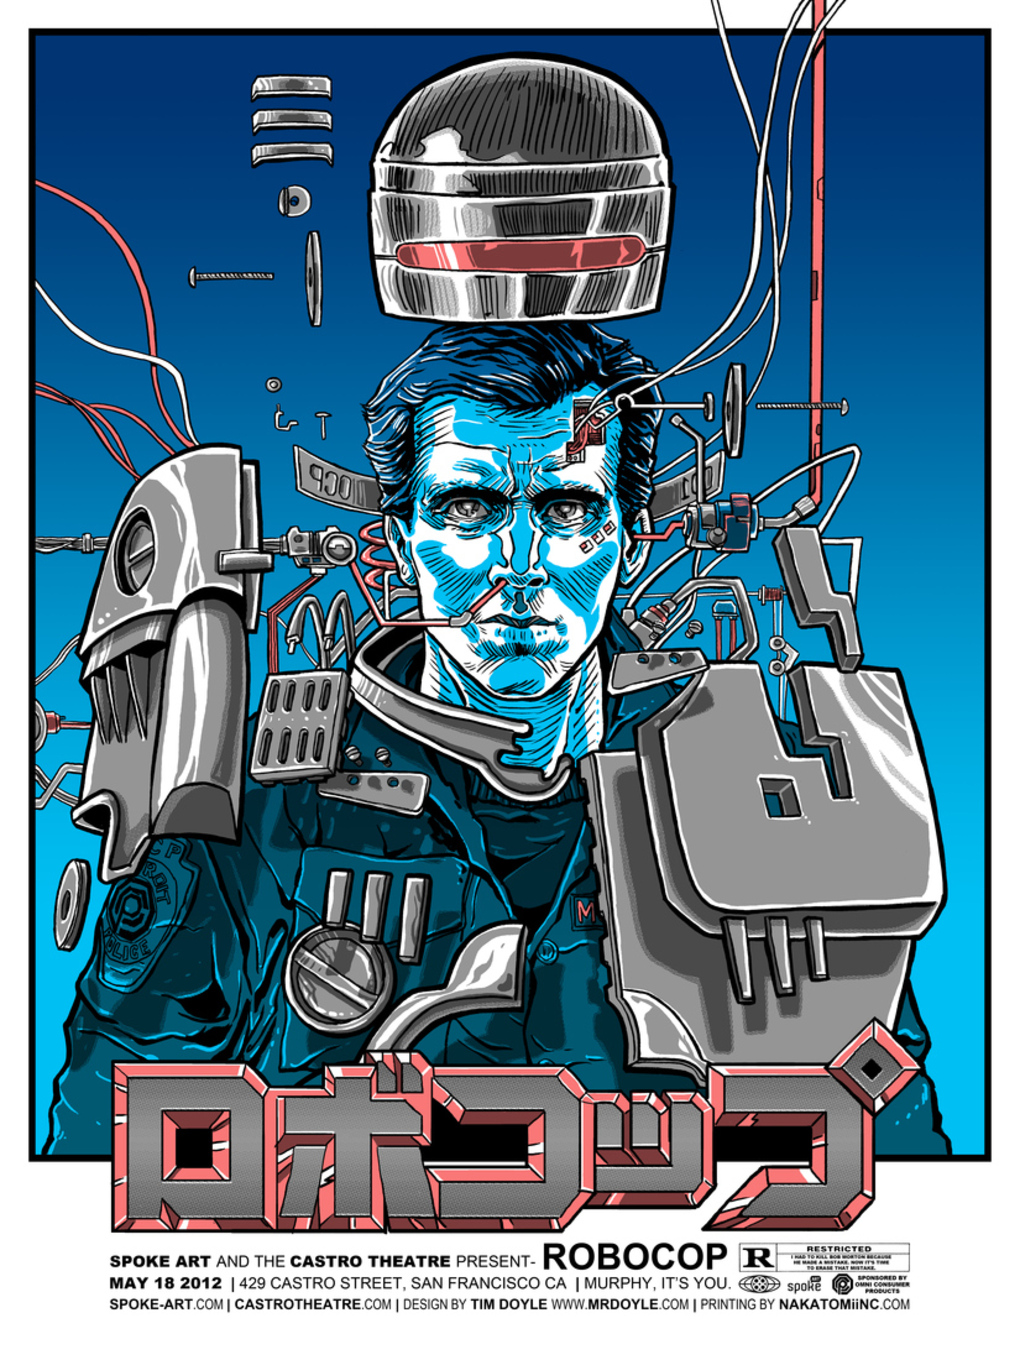 Robocop_-_Tim_Doyle_verge_super_wide